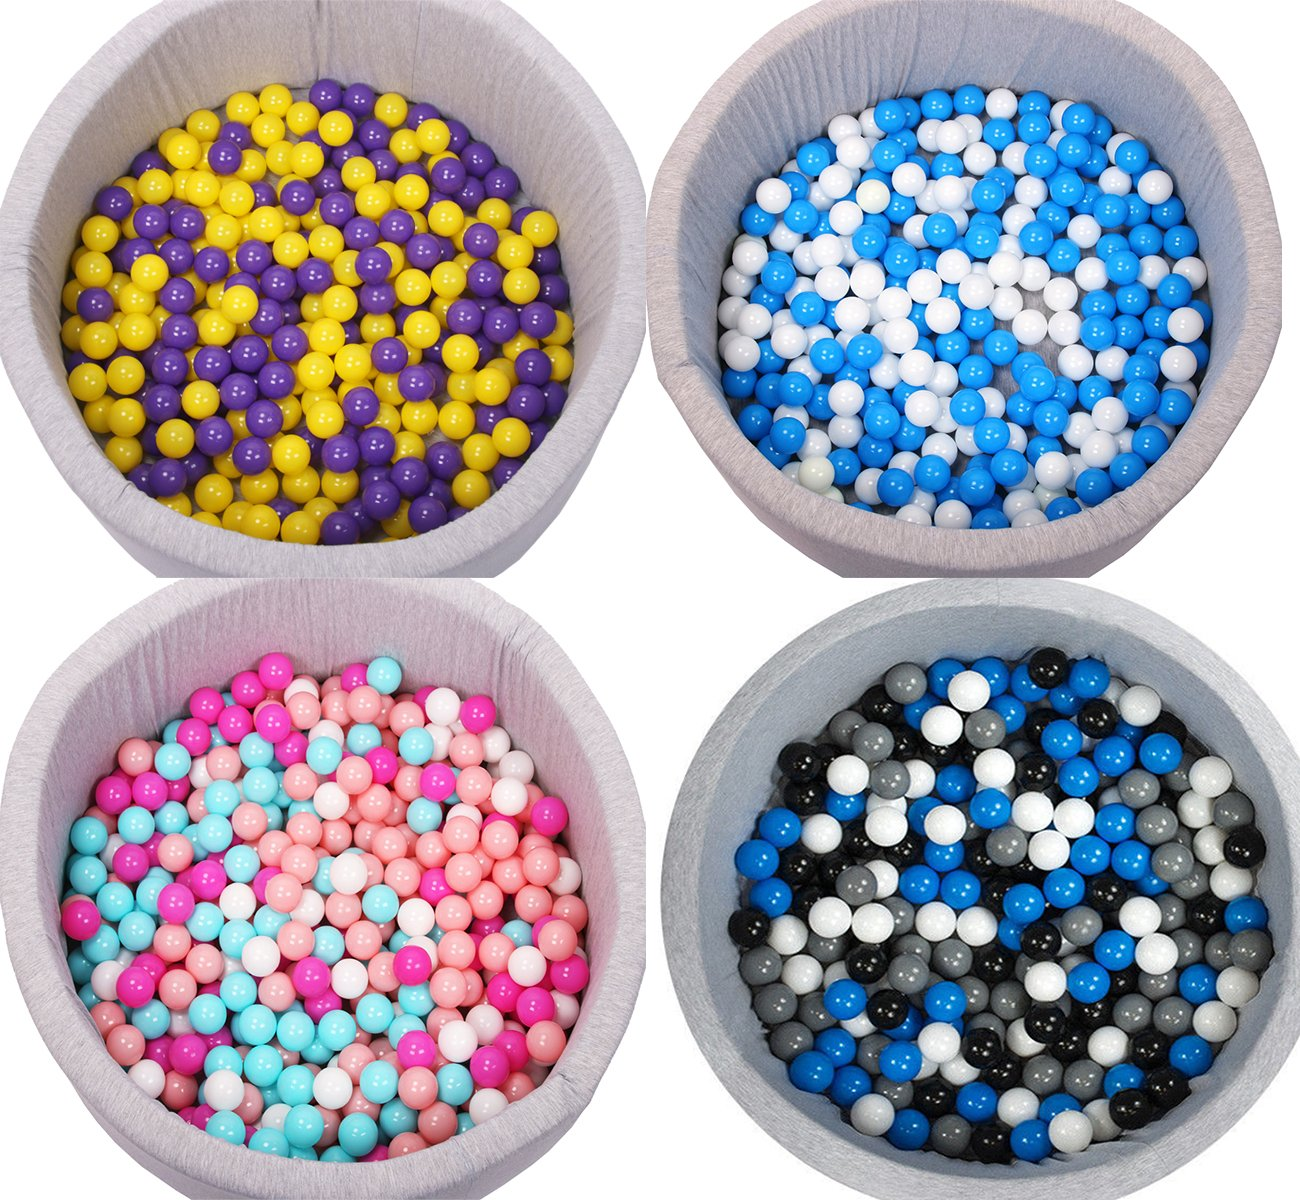 Langxun Pack of 200 Silver ( Gray ) Ball Pit Balls - Phthalate Free BPA Free Crush Proof Plastic Ball | Ideal Gifts for Kids & Photo Booth Props for Baby and Kids by Langxun (Image #6)